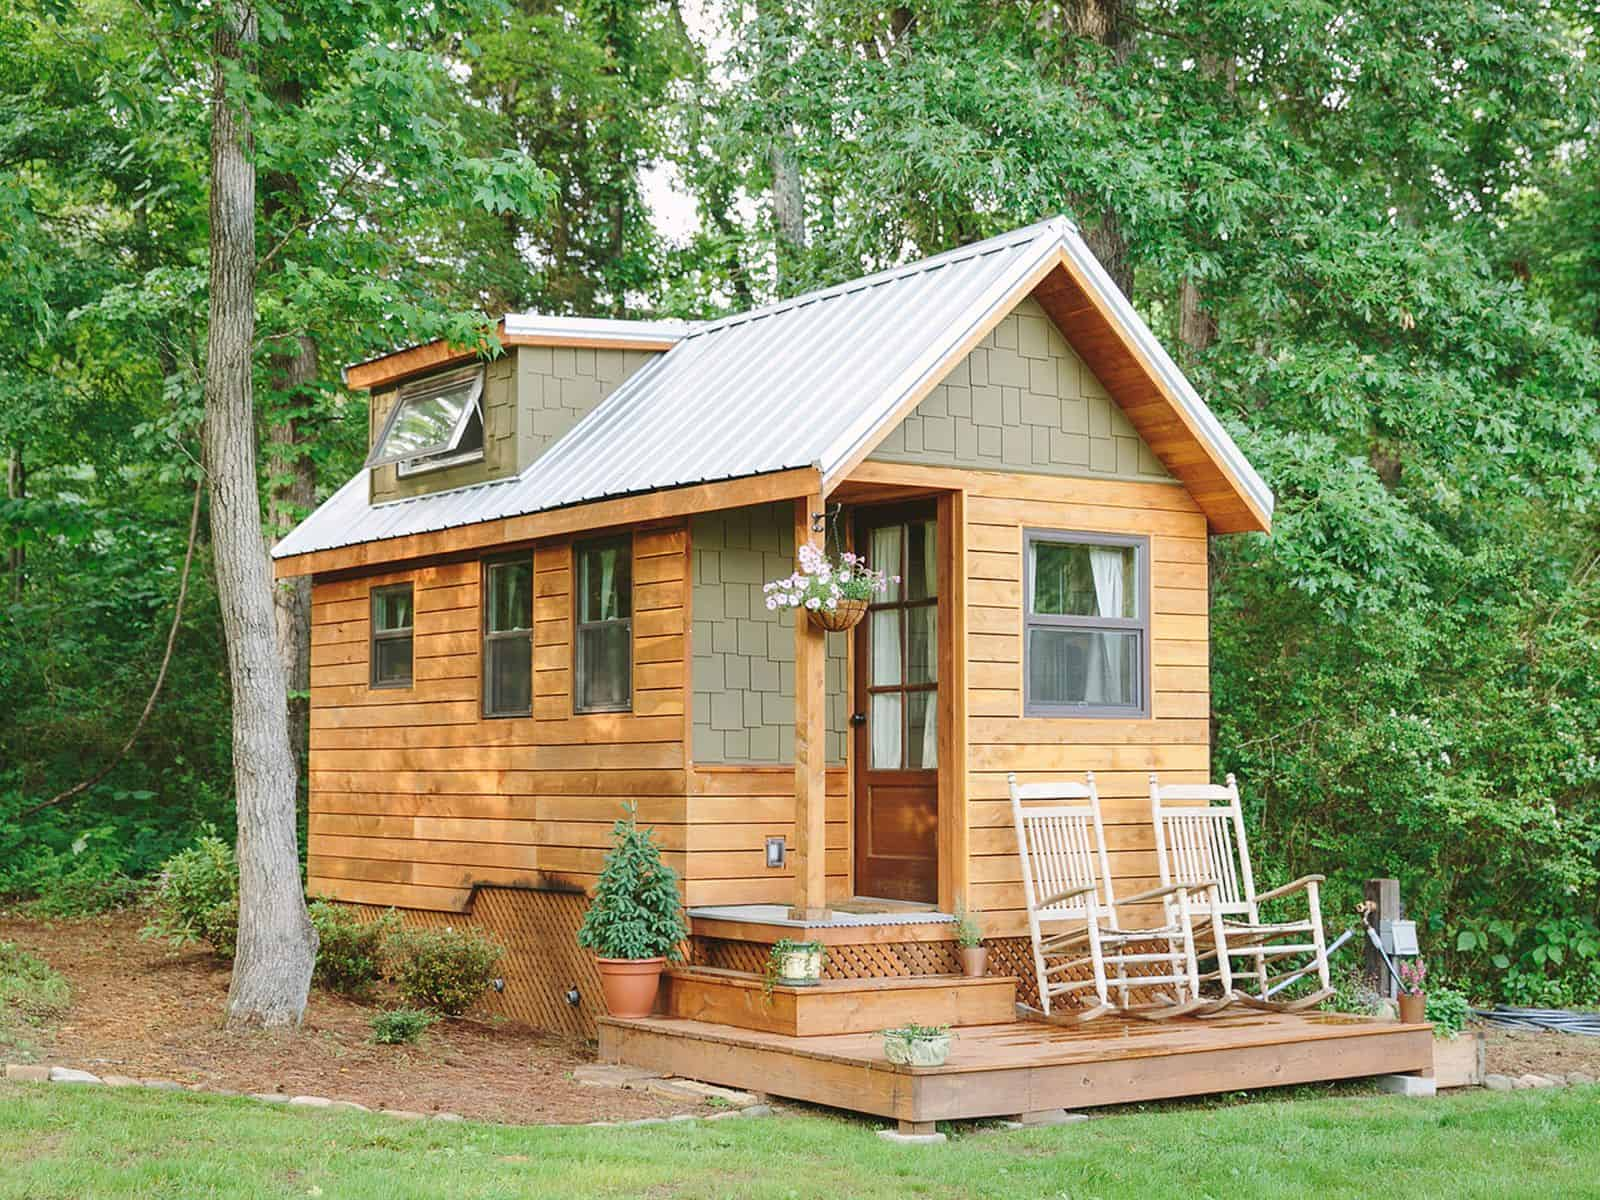 Extremely Tiny Homes Minimalistic Living In Style: small farmhouse